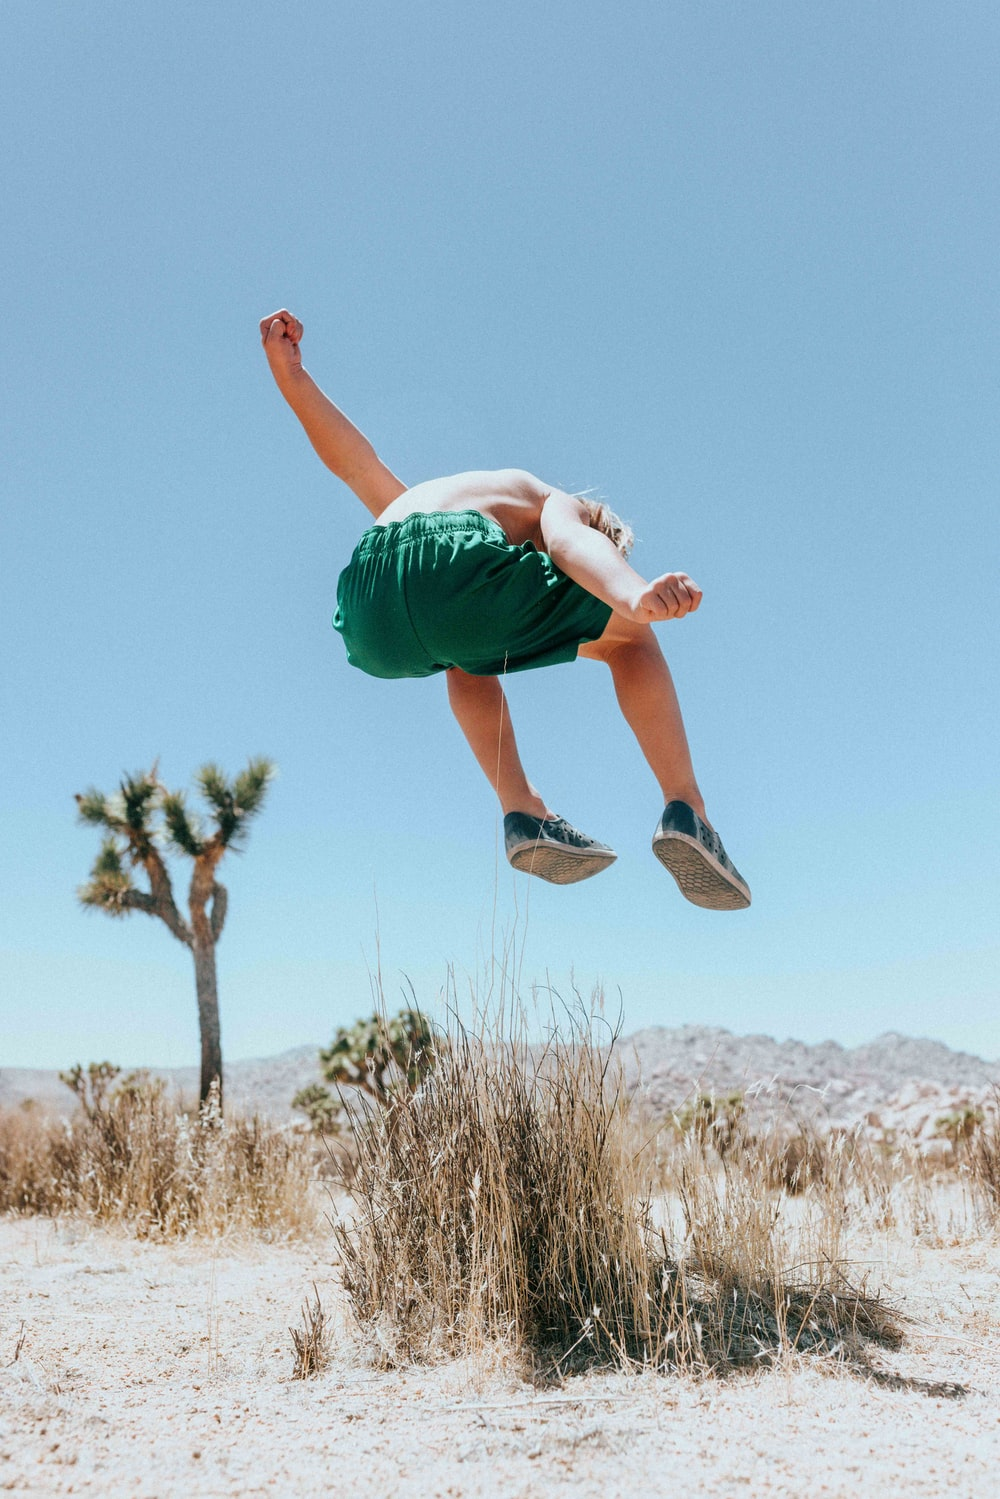 man in green t-shirt and green shorts jumping on brown grass field during daytime